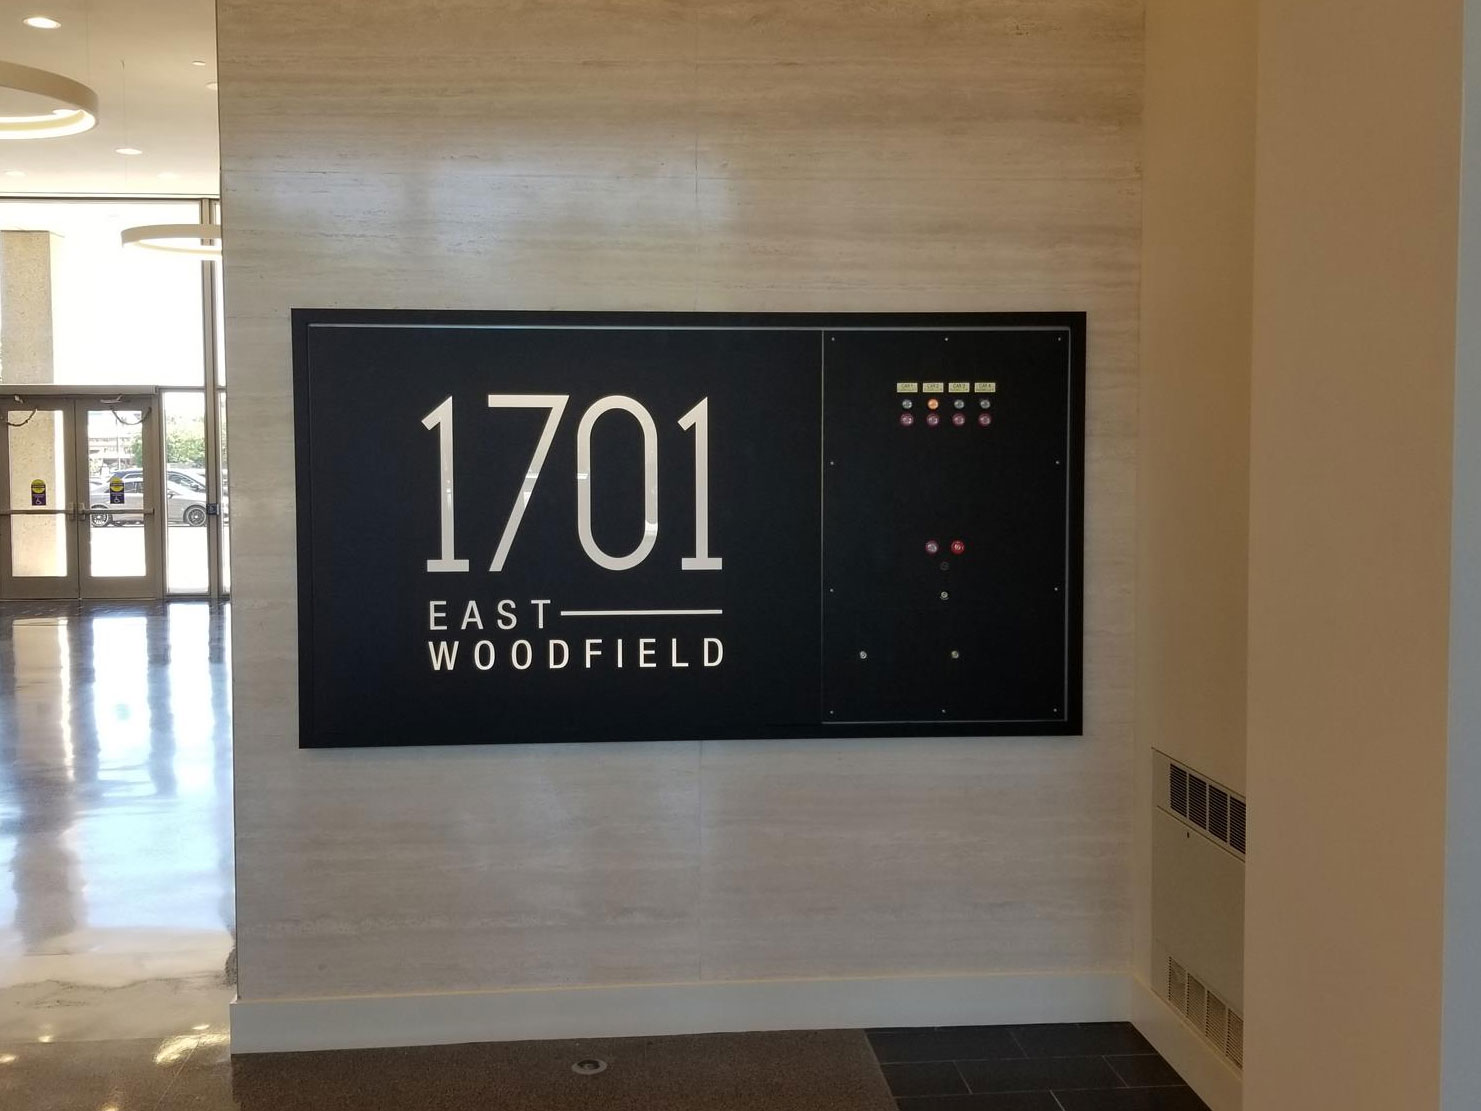 1701 East Woodfield Lobby Sign